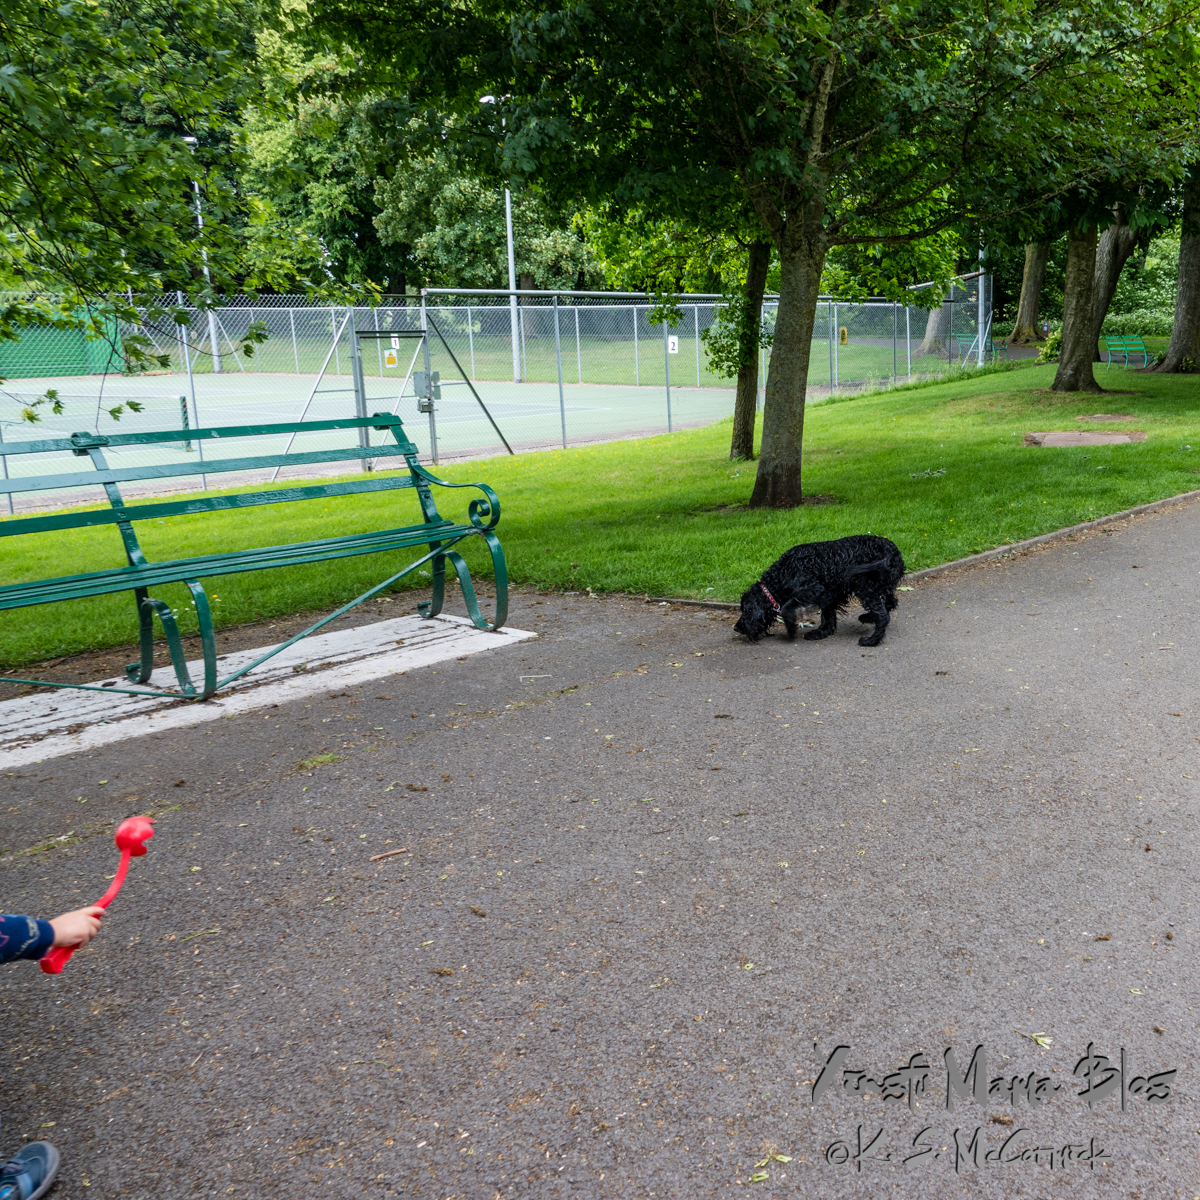 Green bench, wet black dog and the arm of a child with a ball thrower, taken at a park in Carlisle, Cumbria, England.